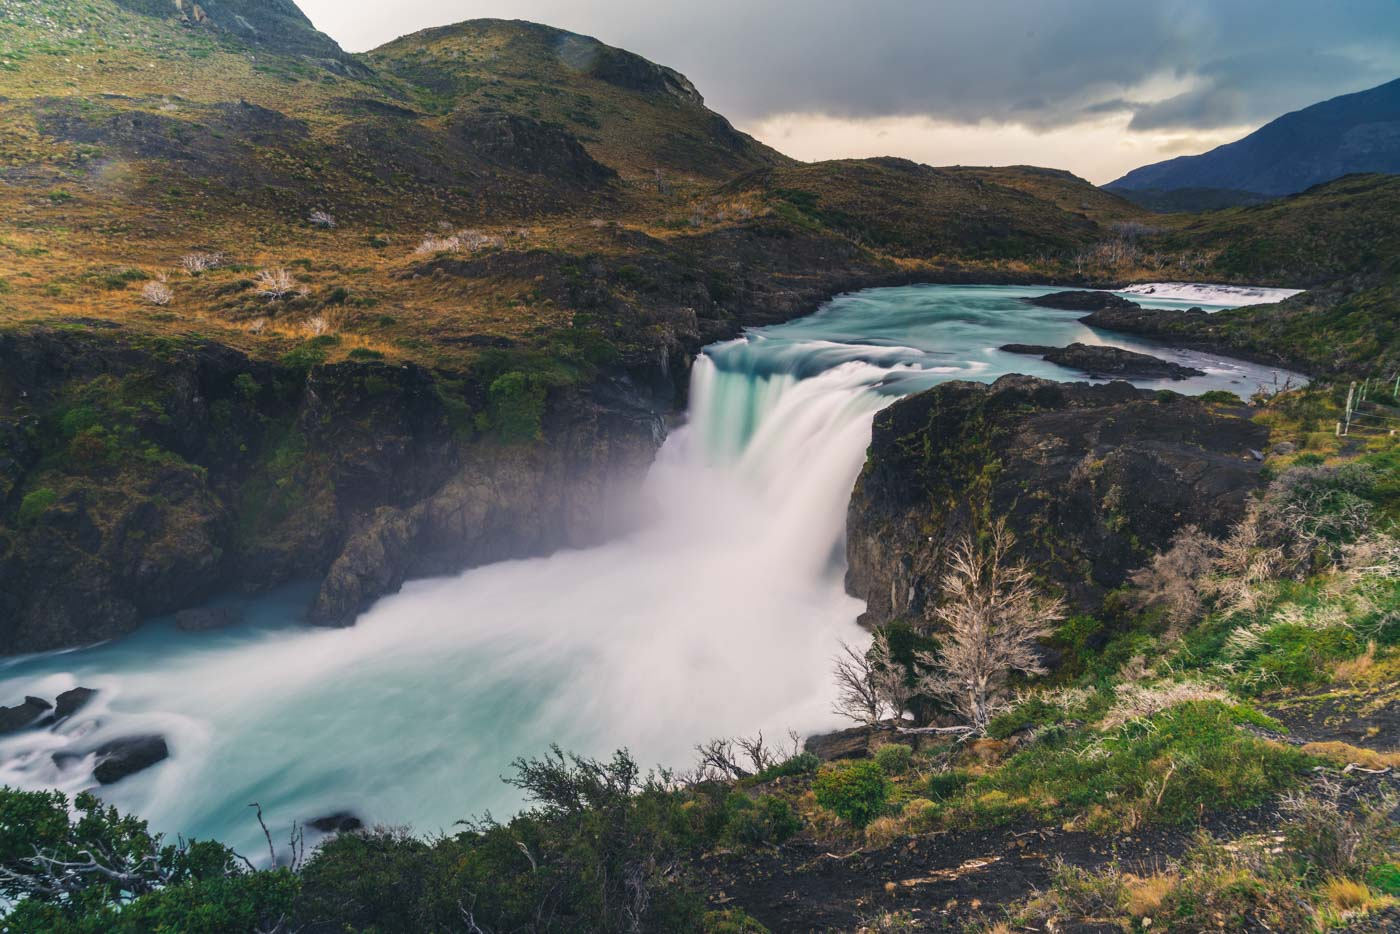 Salto Grande waterfall, Torres del Paine National Park, Patagonia, Chile